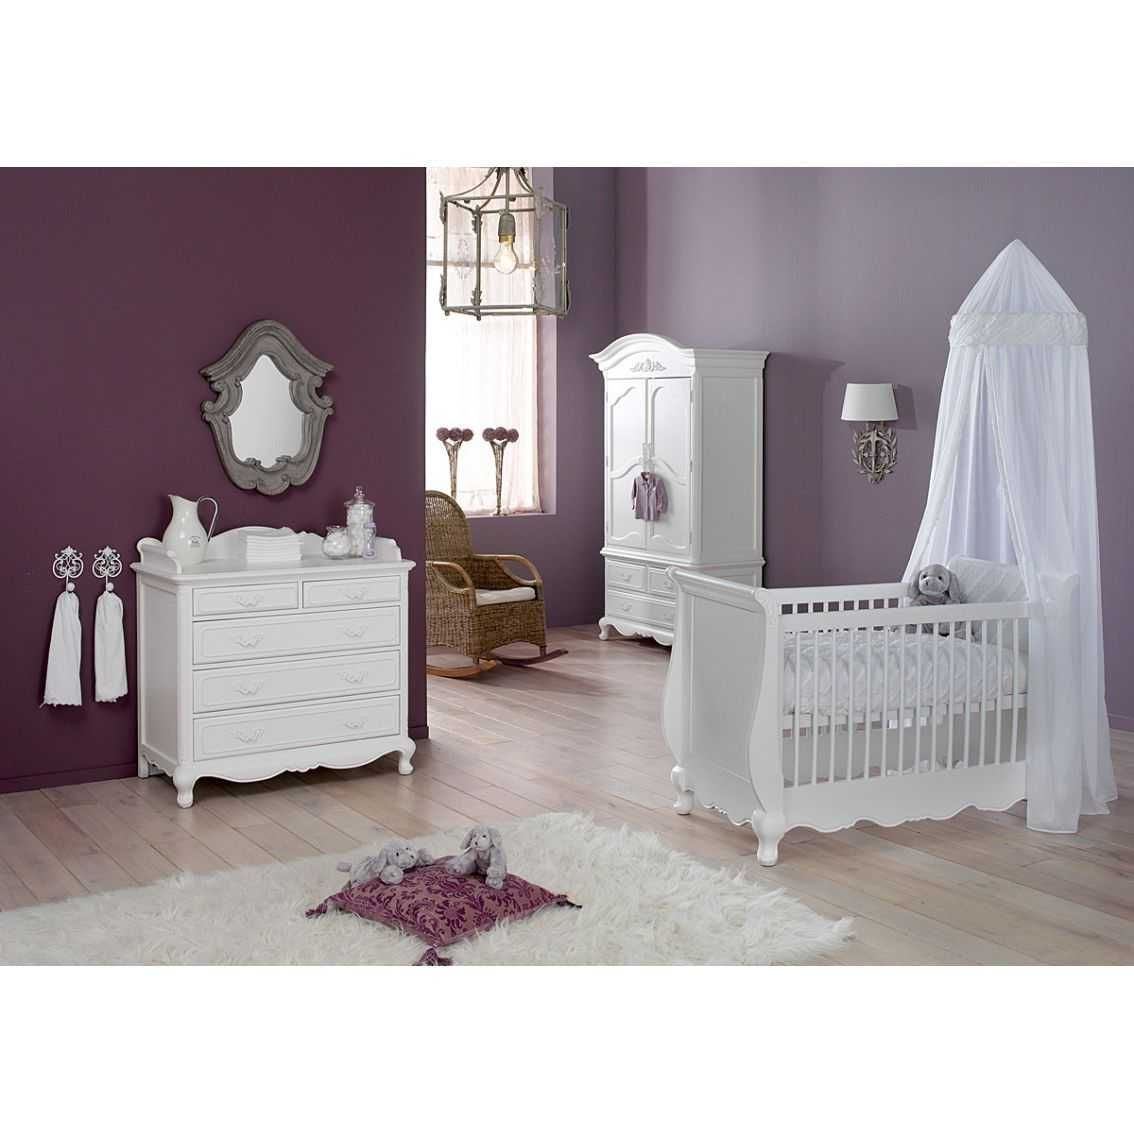 77+ Cheap Baby Room Furniture Sets - Space Saving Bedroom Ideas ...